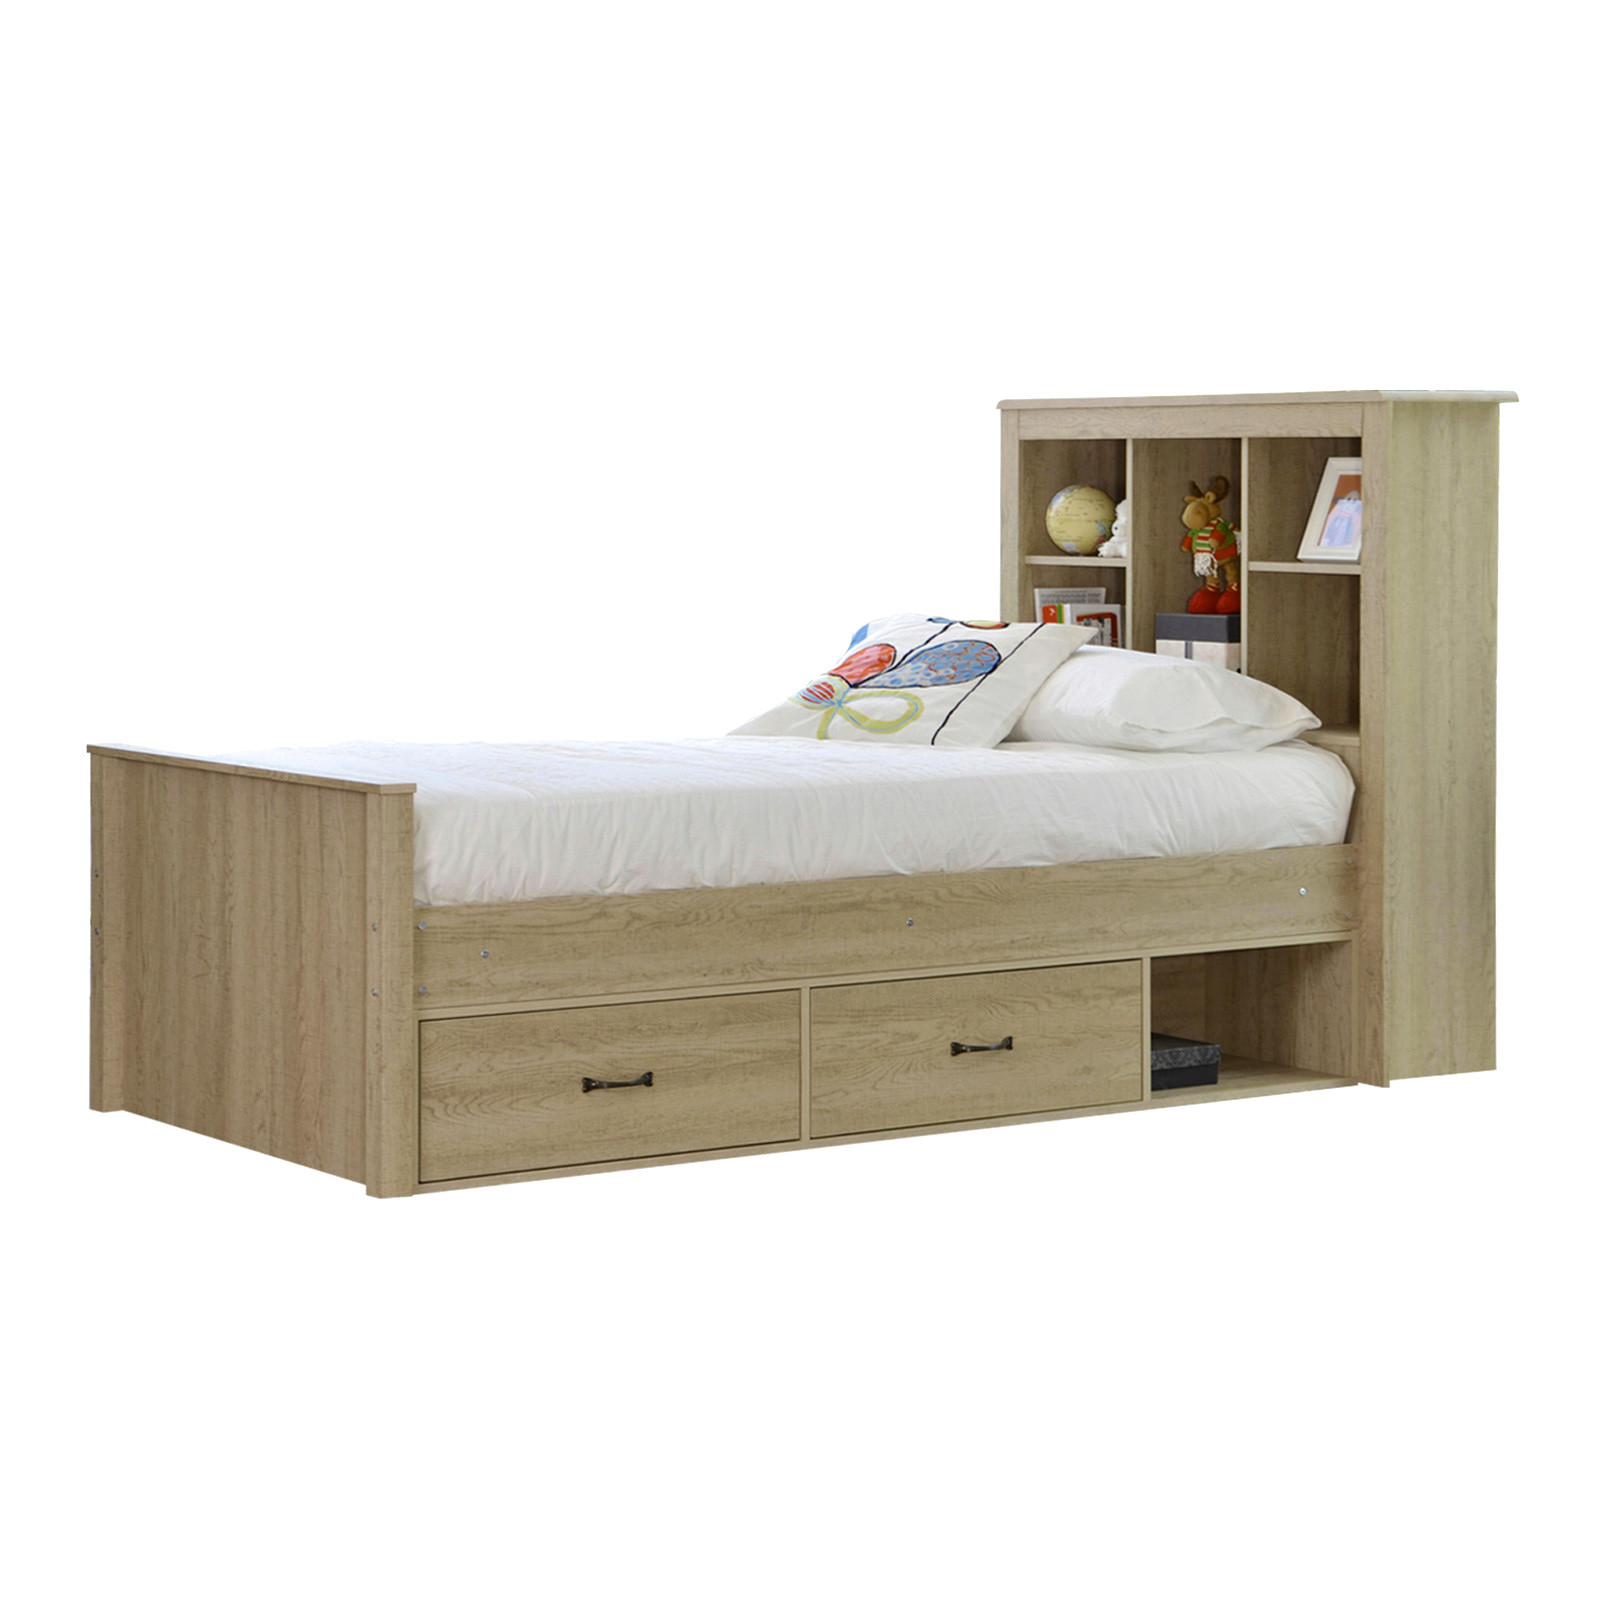 single range bambino and trundle king bed final white hearts product home beds